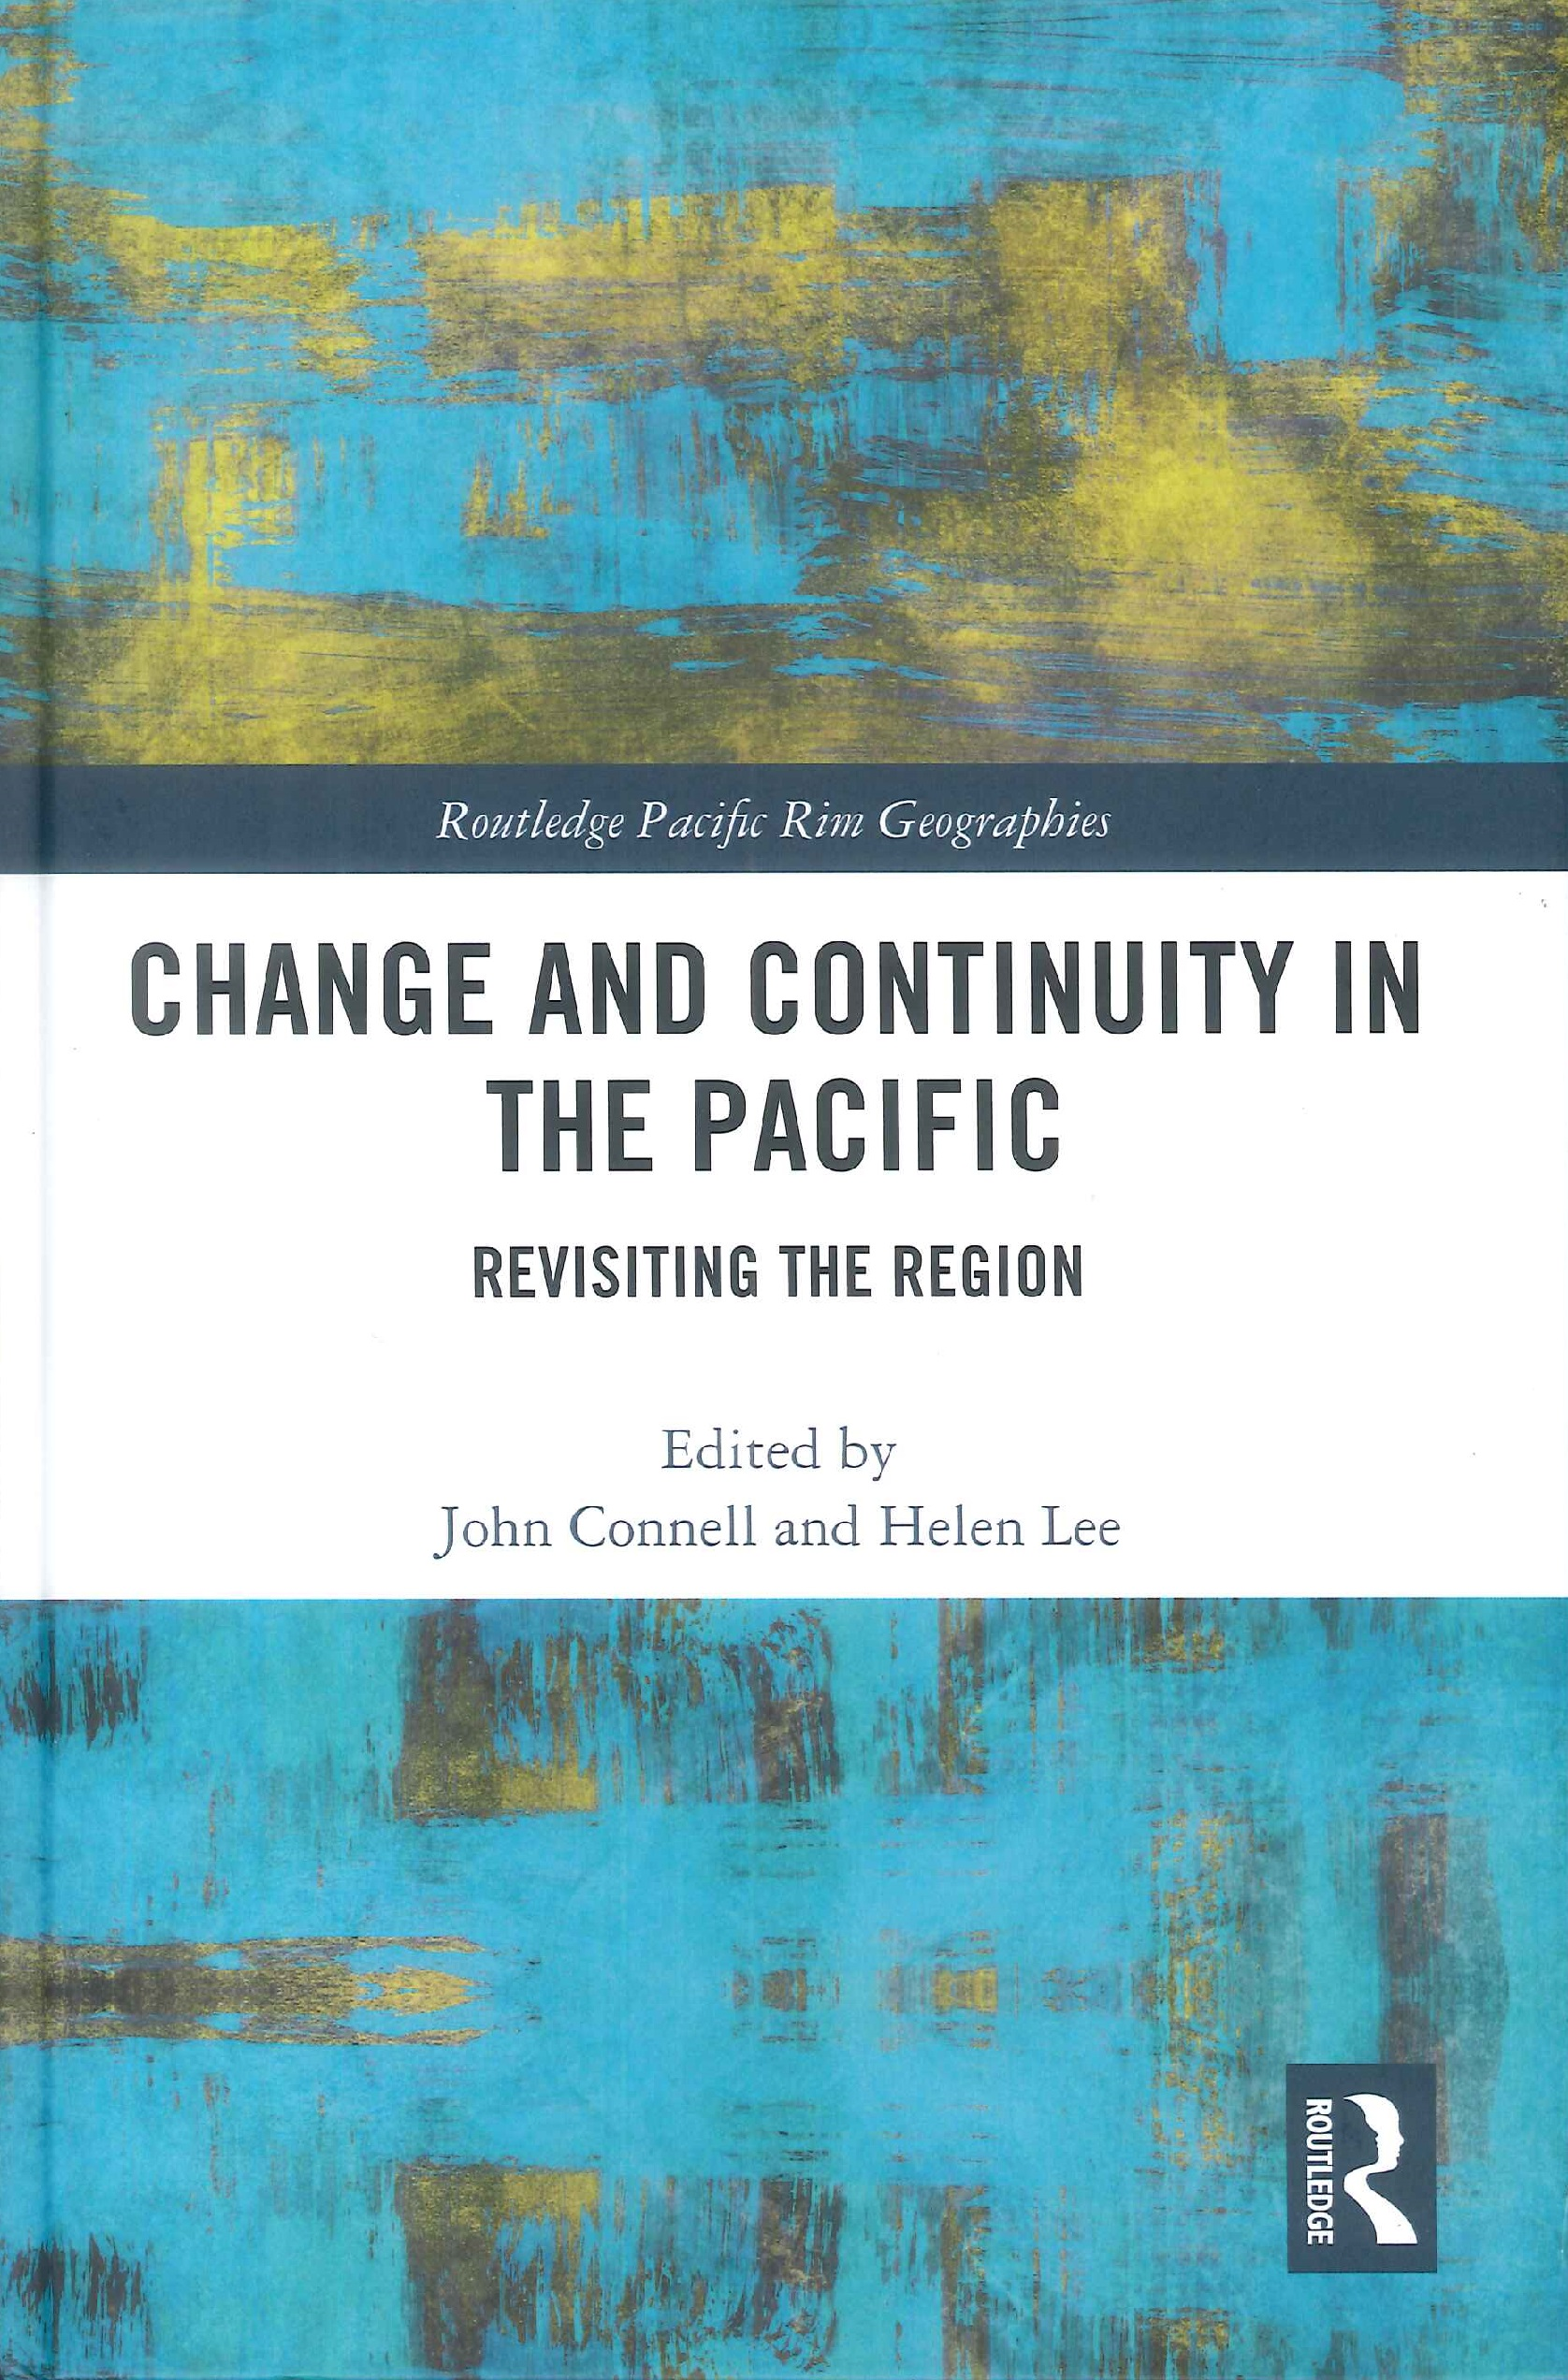 Change and continuity in the Pacific:revisiting the region